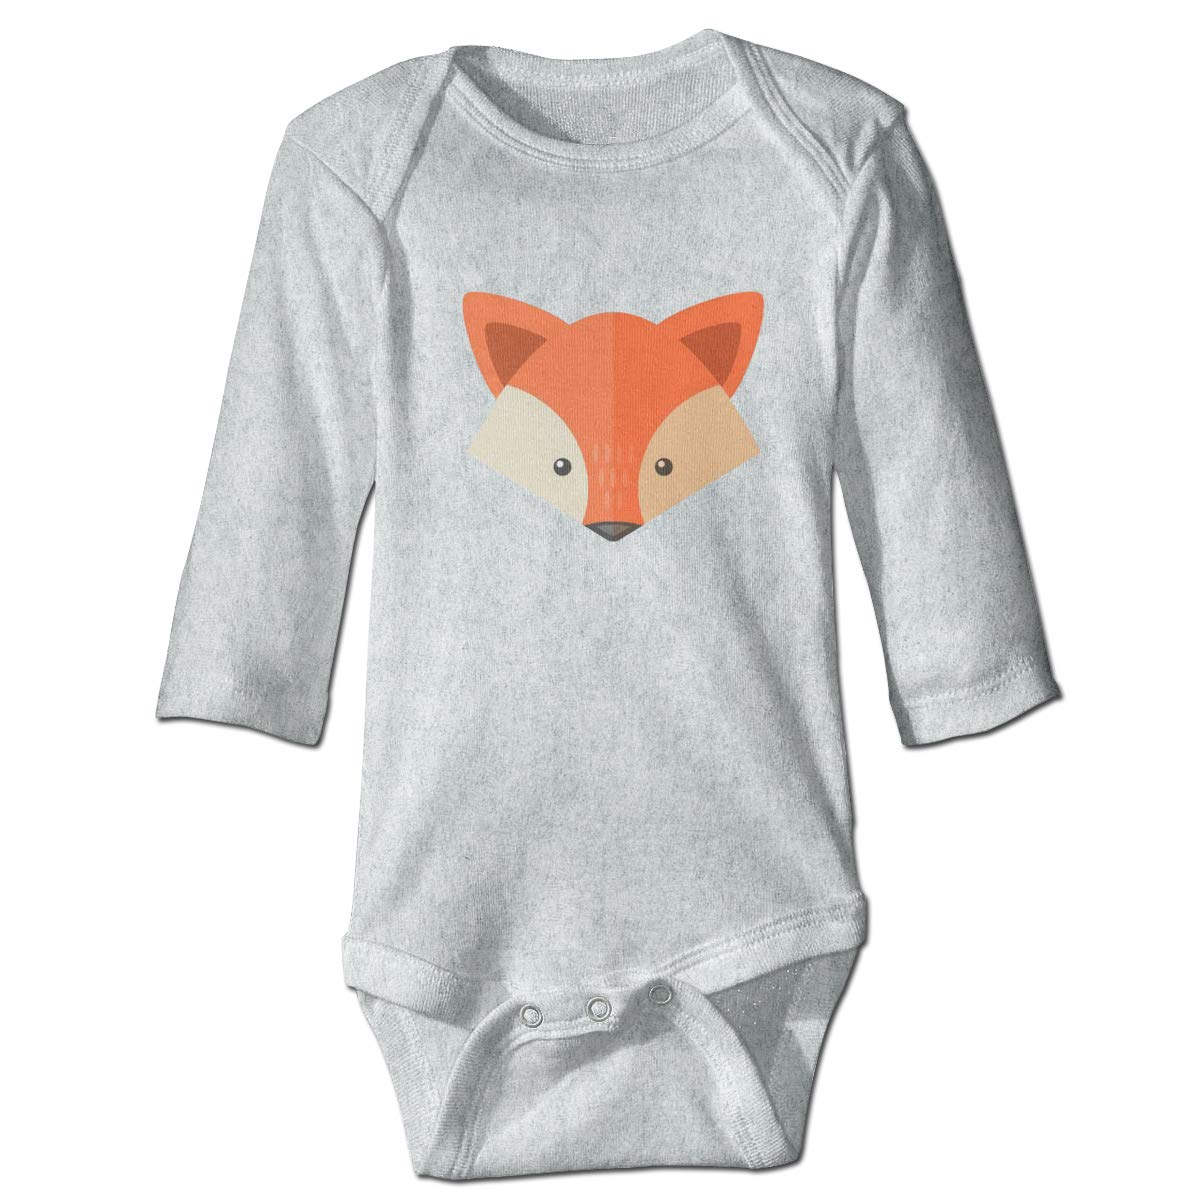 Baby Long Sleeve Classic Fox Onesies Bodysuit Soft Romper Outfits for Boys Girls